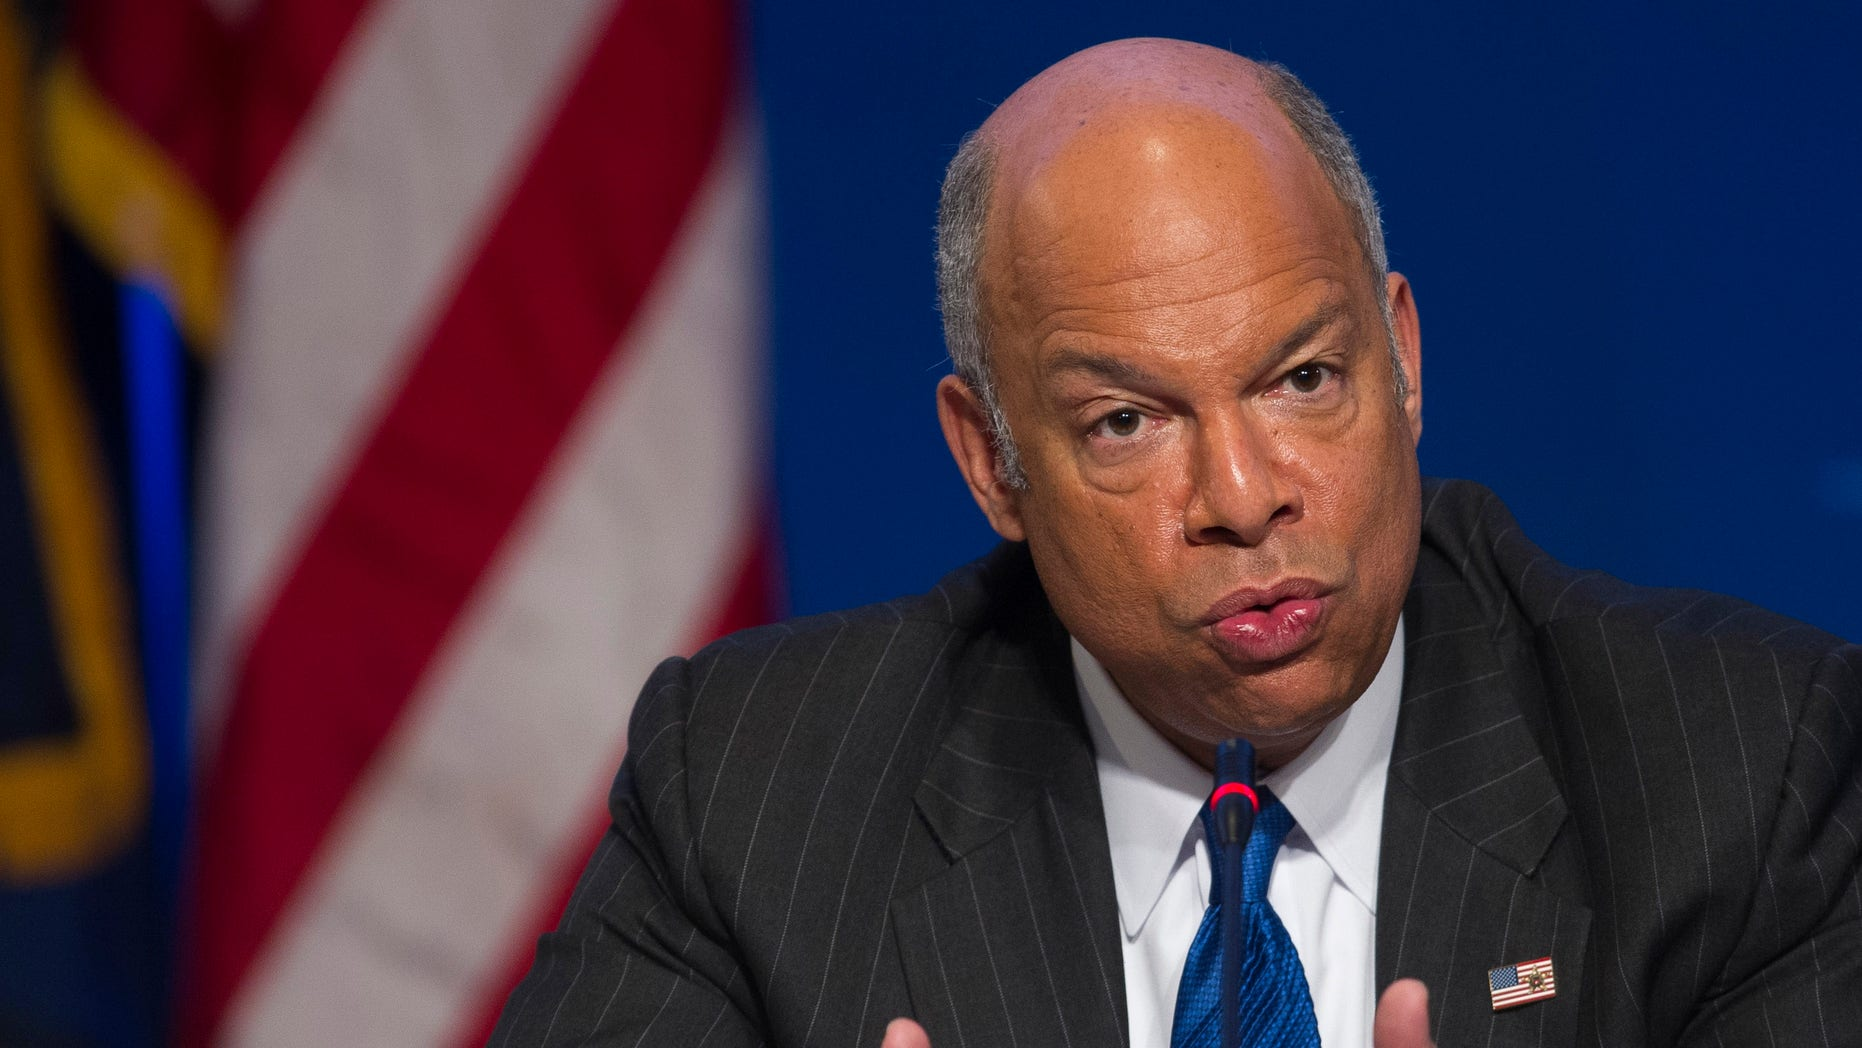 Department of Homeland Security Secretary Jeh Johnson speaks about the agency's budget and cybersecurity at the Homeland Security and Public Safety Committee session during the  National Governors Association Winter Meeting in Washington, Sunday, Feb. 22, 2015. Several Republican governors are urging GOP congressional leaders to stand firm next week in opposing legislation funding the Department of Homeland Security if it doesn't also overturn President Barack Obama's executive action on immigration. (AP Photo/Cliff Owen)